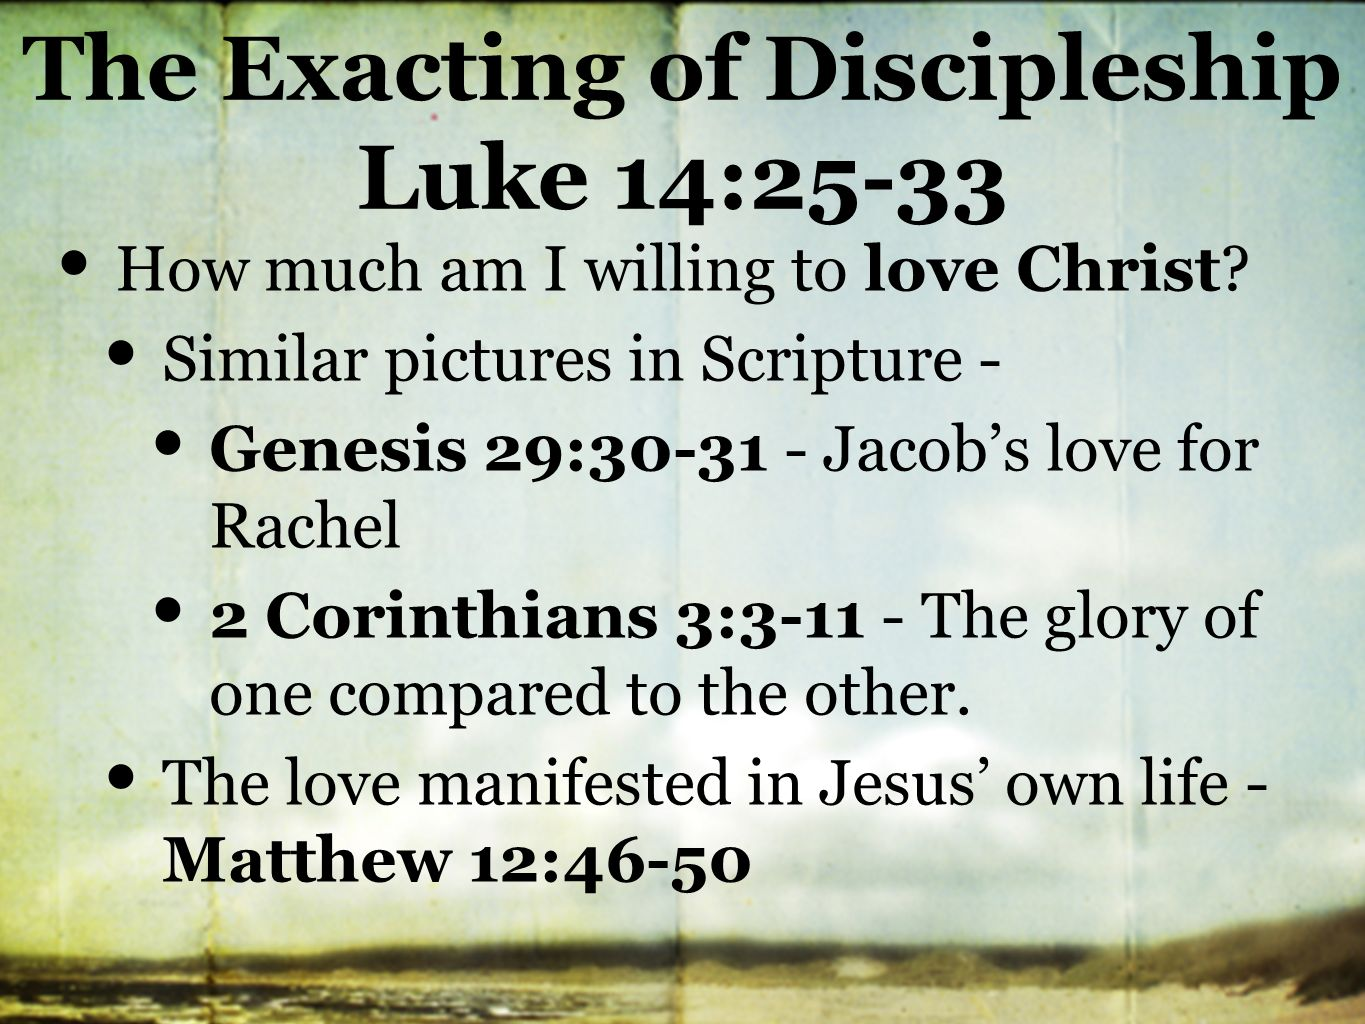 """the meaning of discipleship essay Discipline comes from discipulus, the latin word for pupil, which also provided the source of the word disciple (albeit by way of a late latin sense-shift to """"a follower of jesus christ in his lifetime"""") given that several meanings of discipline deal with study, governing one's behavior, and instruction, one might assume that the word's first meaning."""